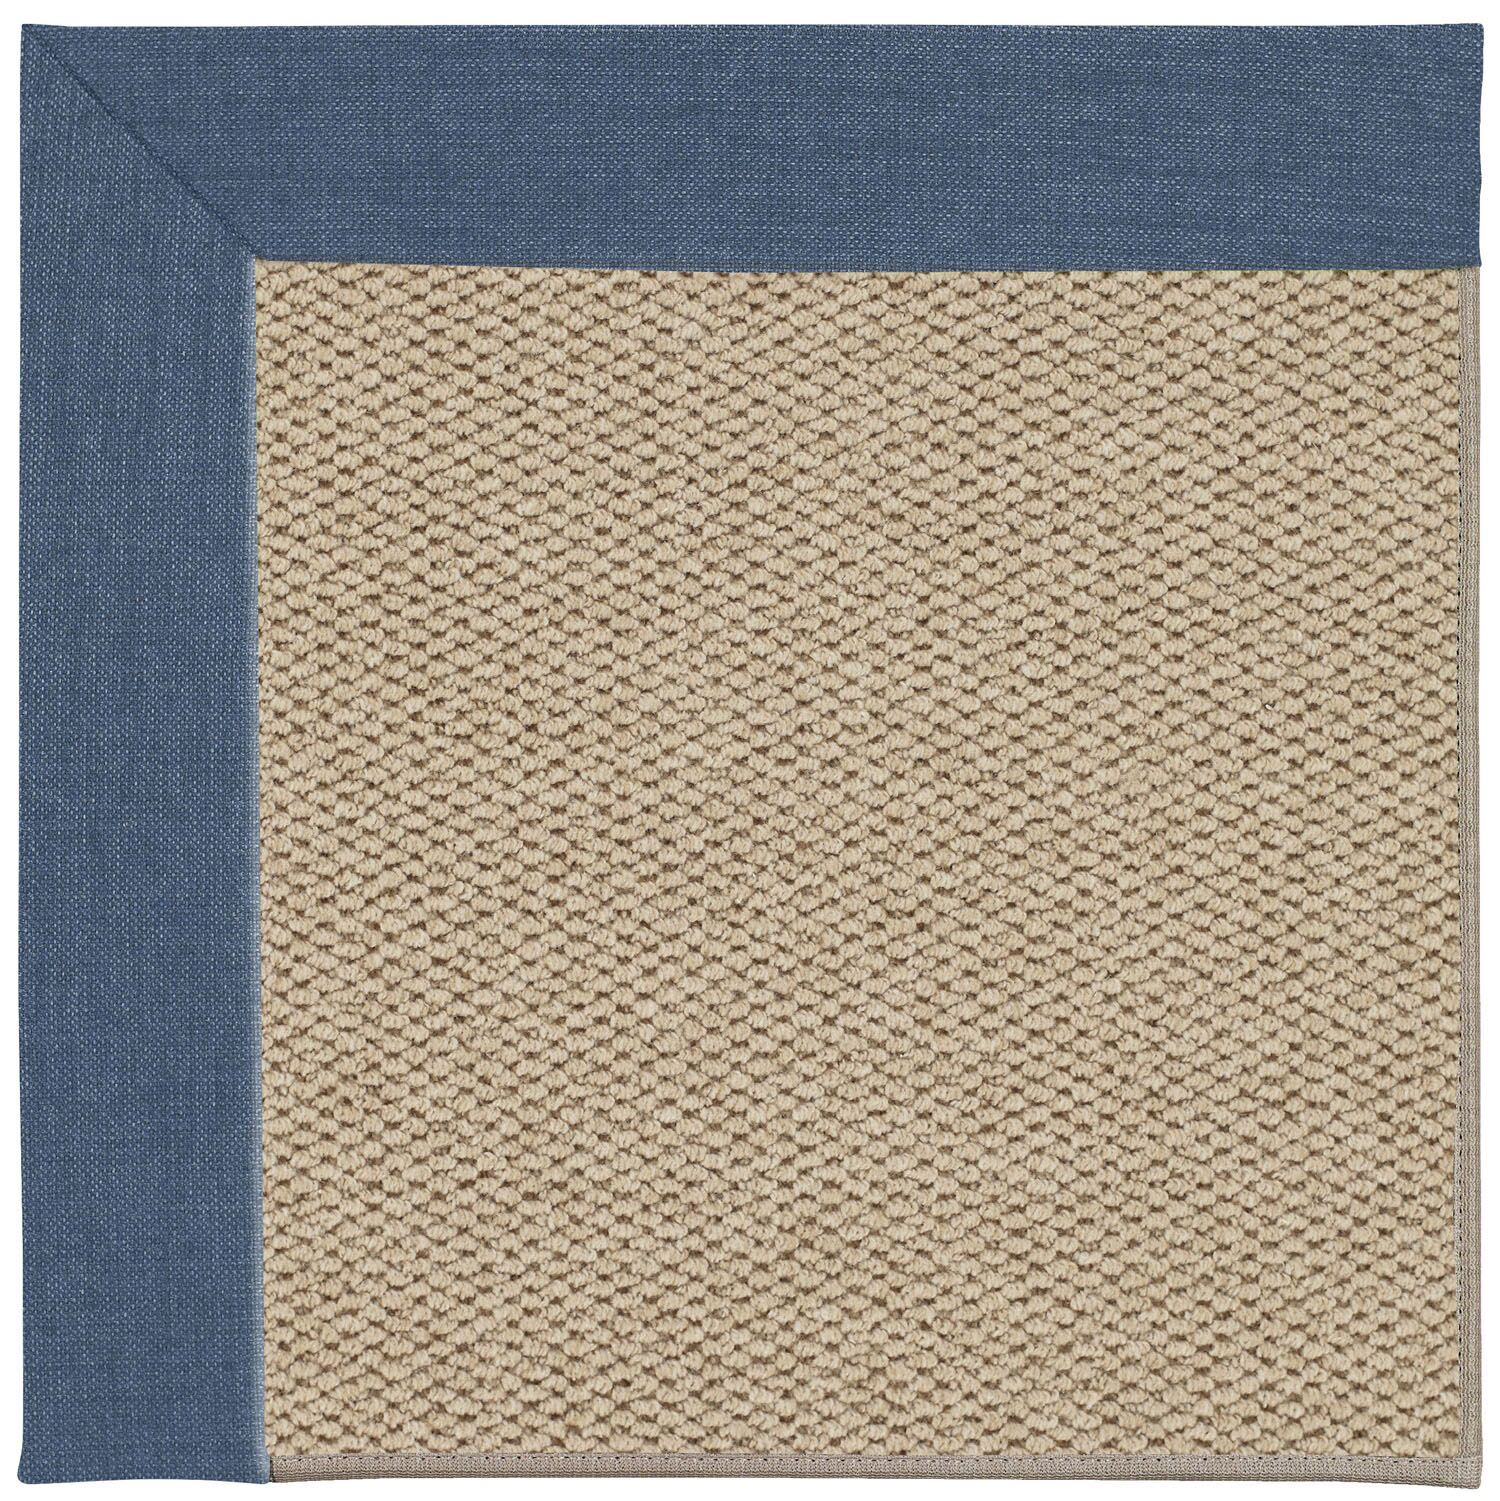 Barrett Champagne Machine Tufted Caribbean/Beige Area Rug Rug Size: Rectangle 10' x 14'